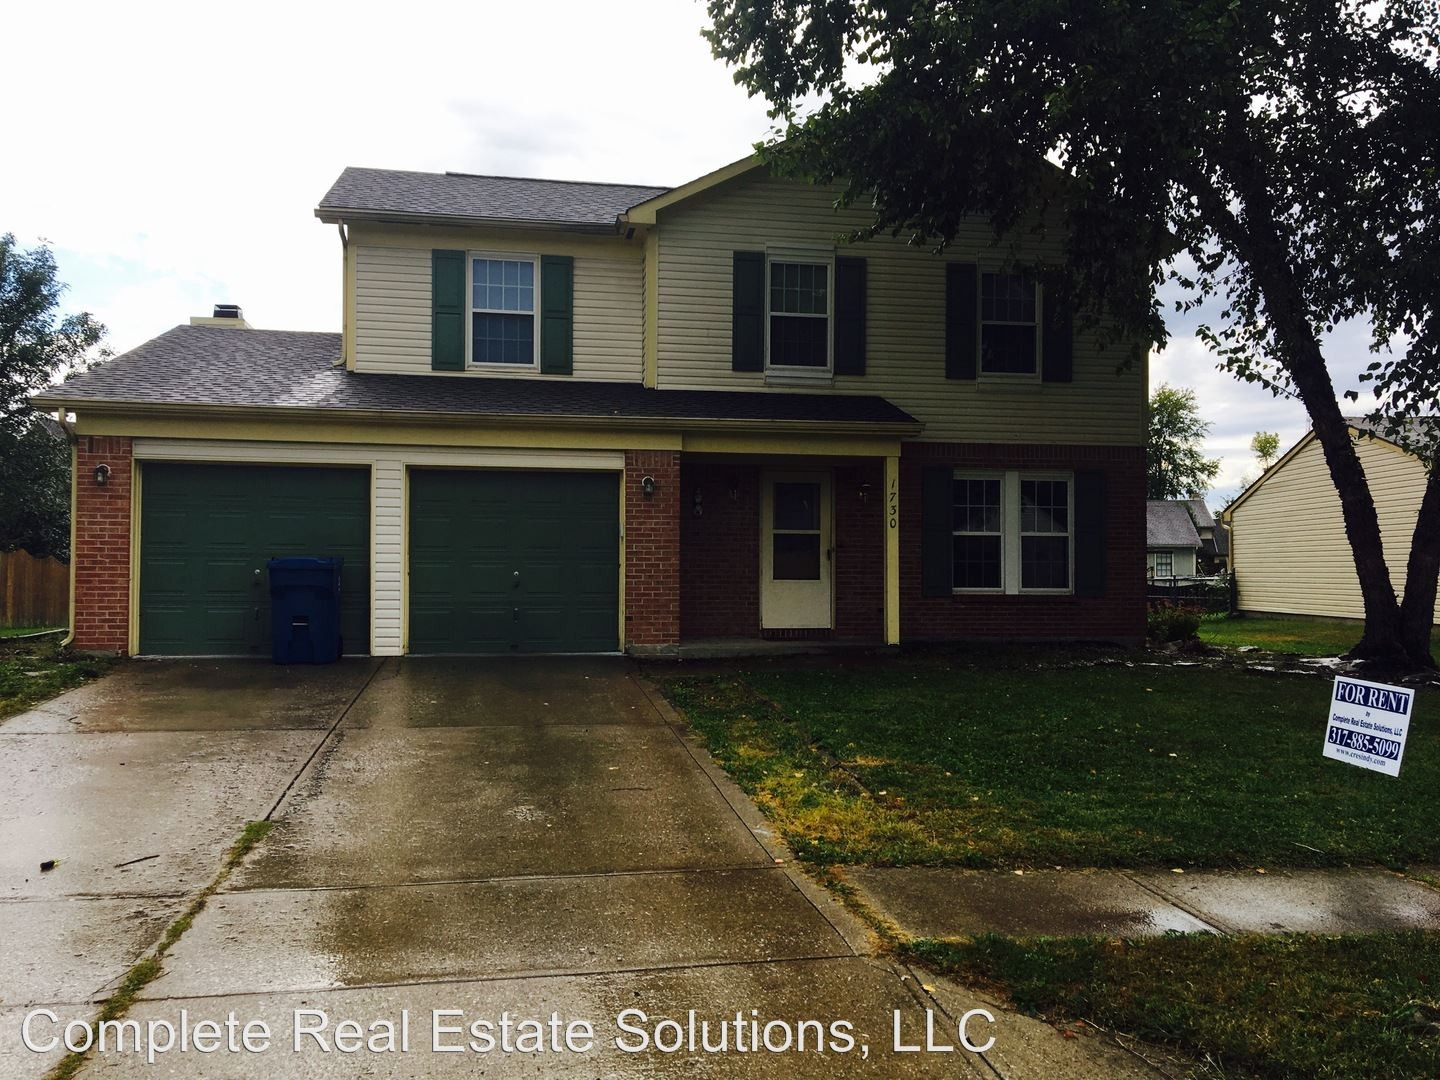 1133 topp creek dr indianapolis in 46214 4 bedroom - 4 bedroom houses for rent indianapolis ...